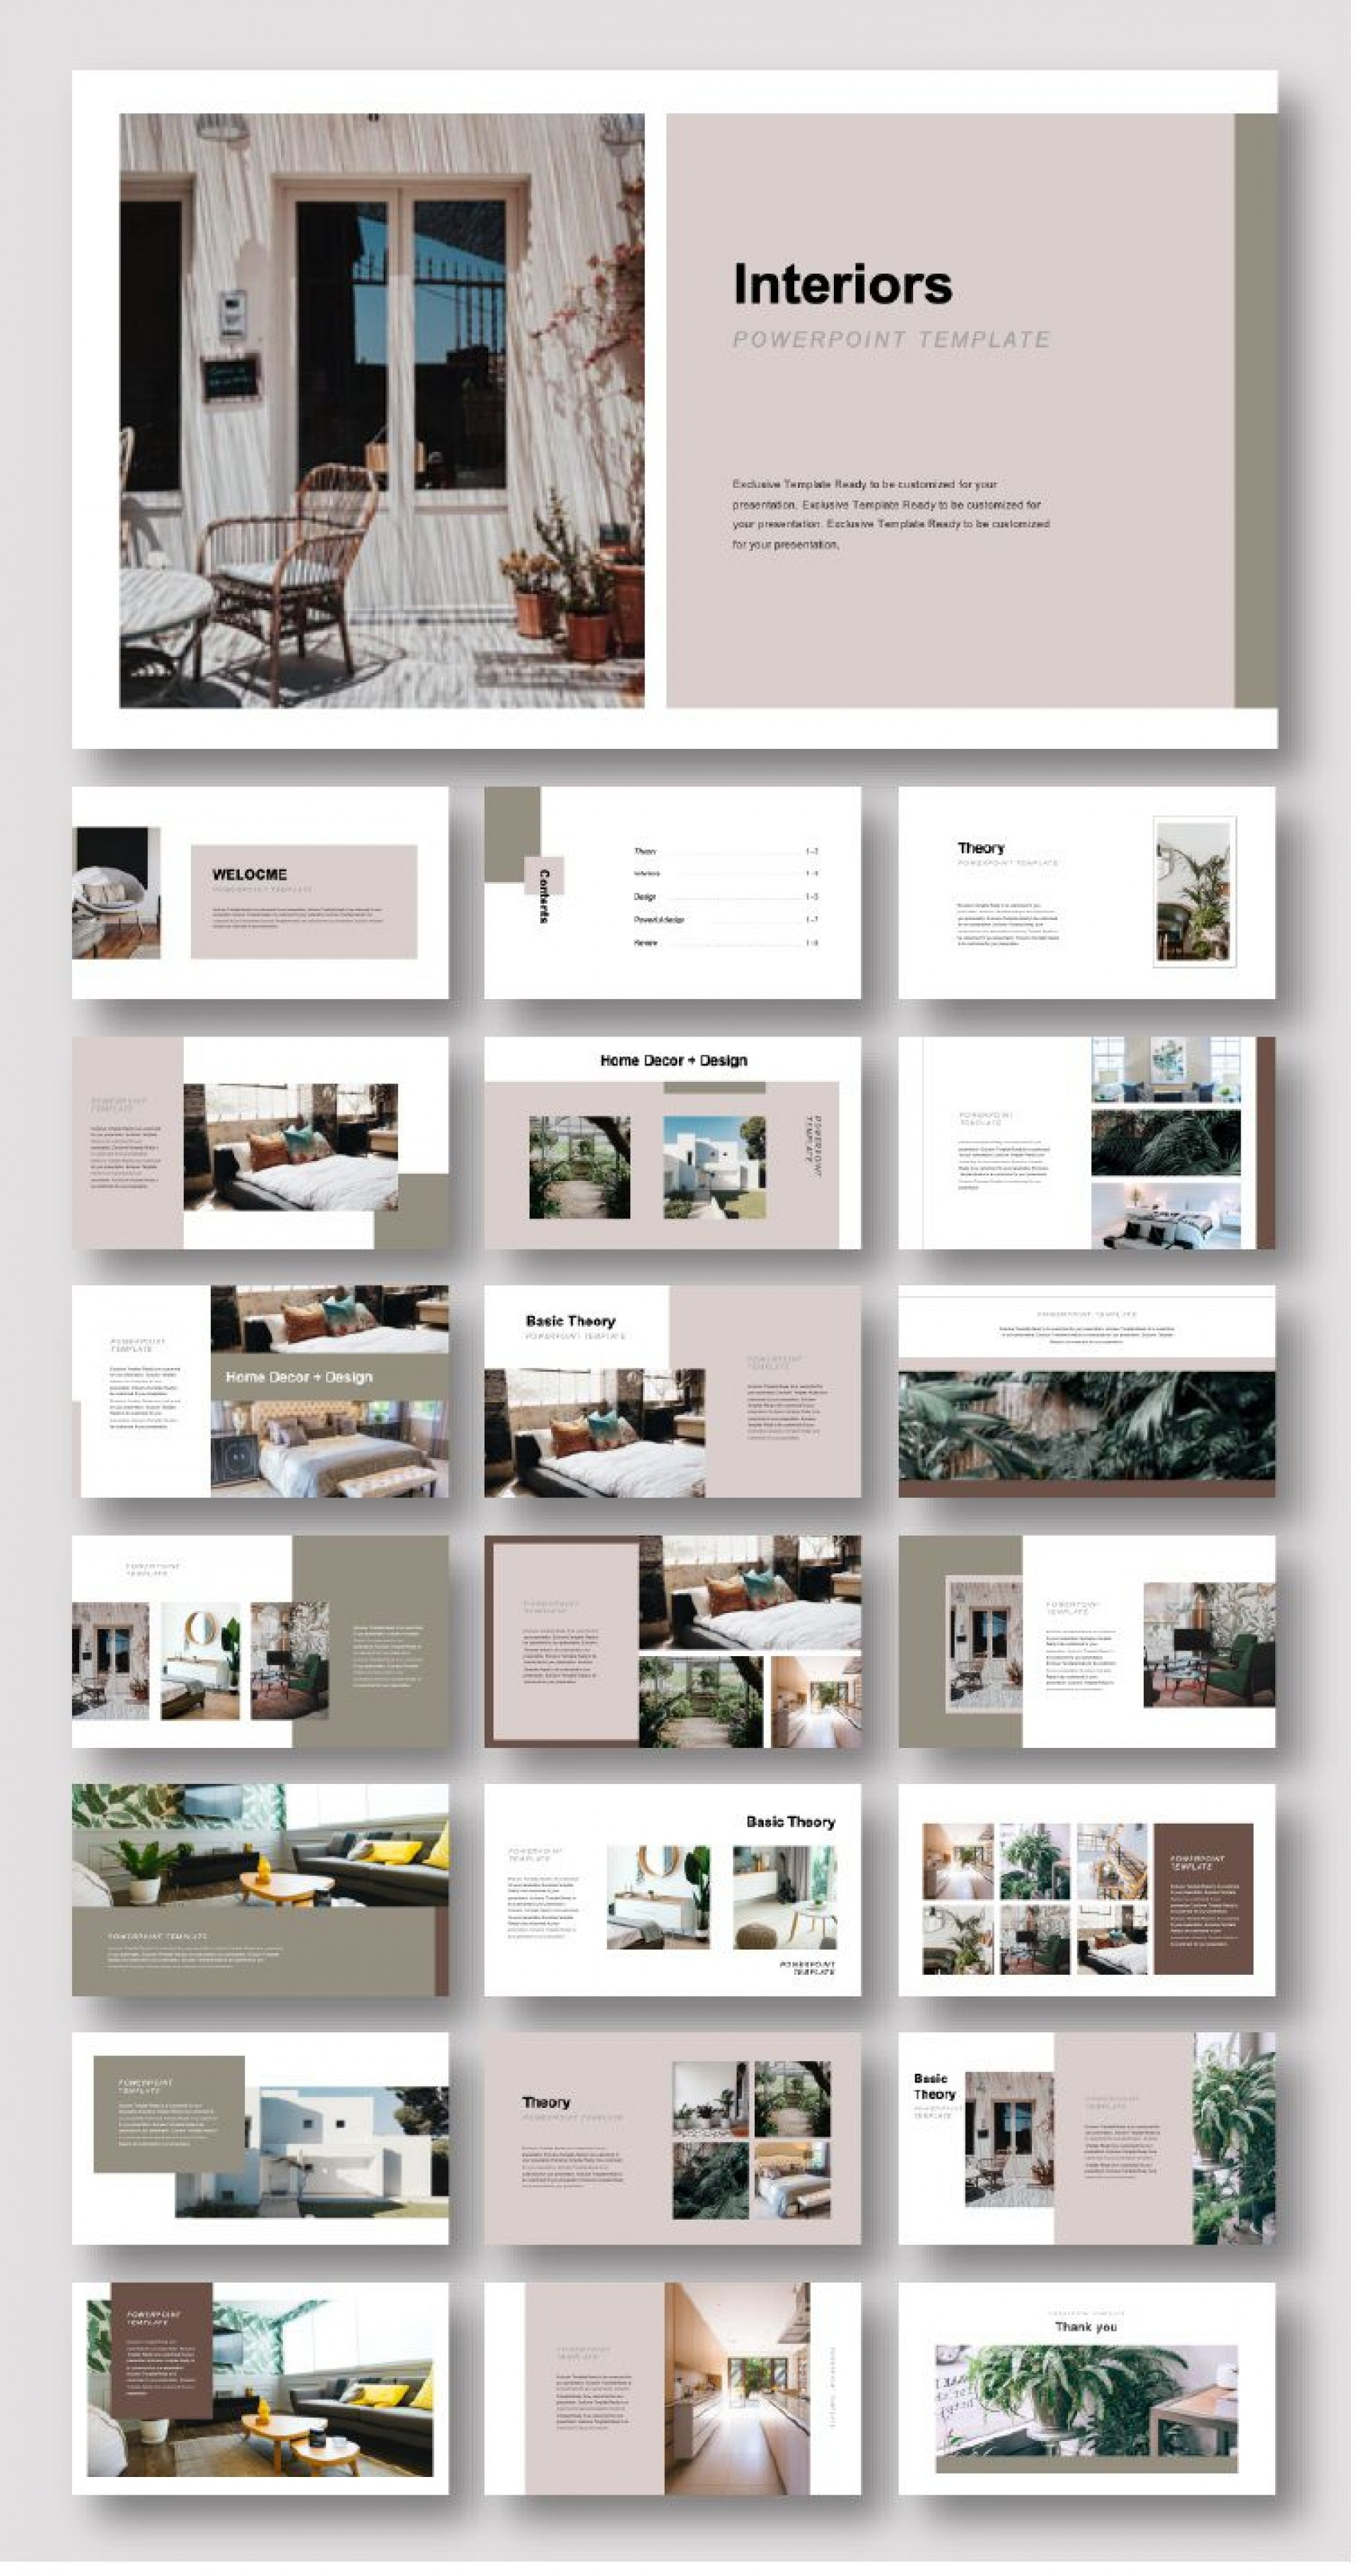 002 Sensational Interior Design Portfolio Template Image  Ppt Free Download Layout1920